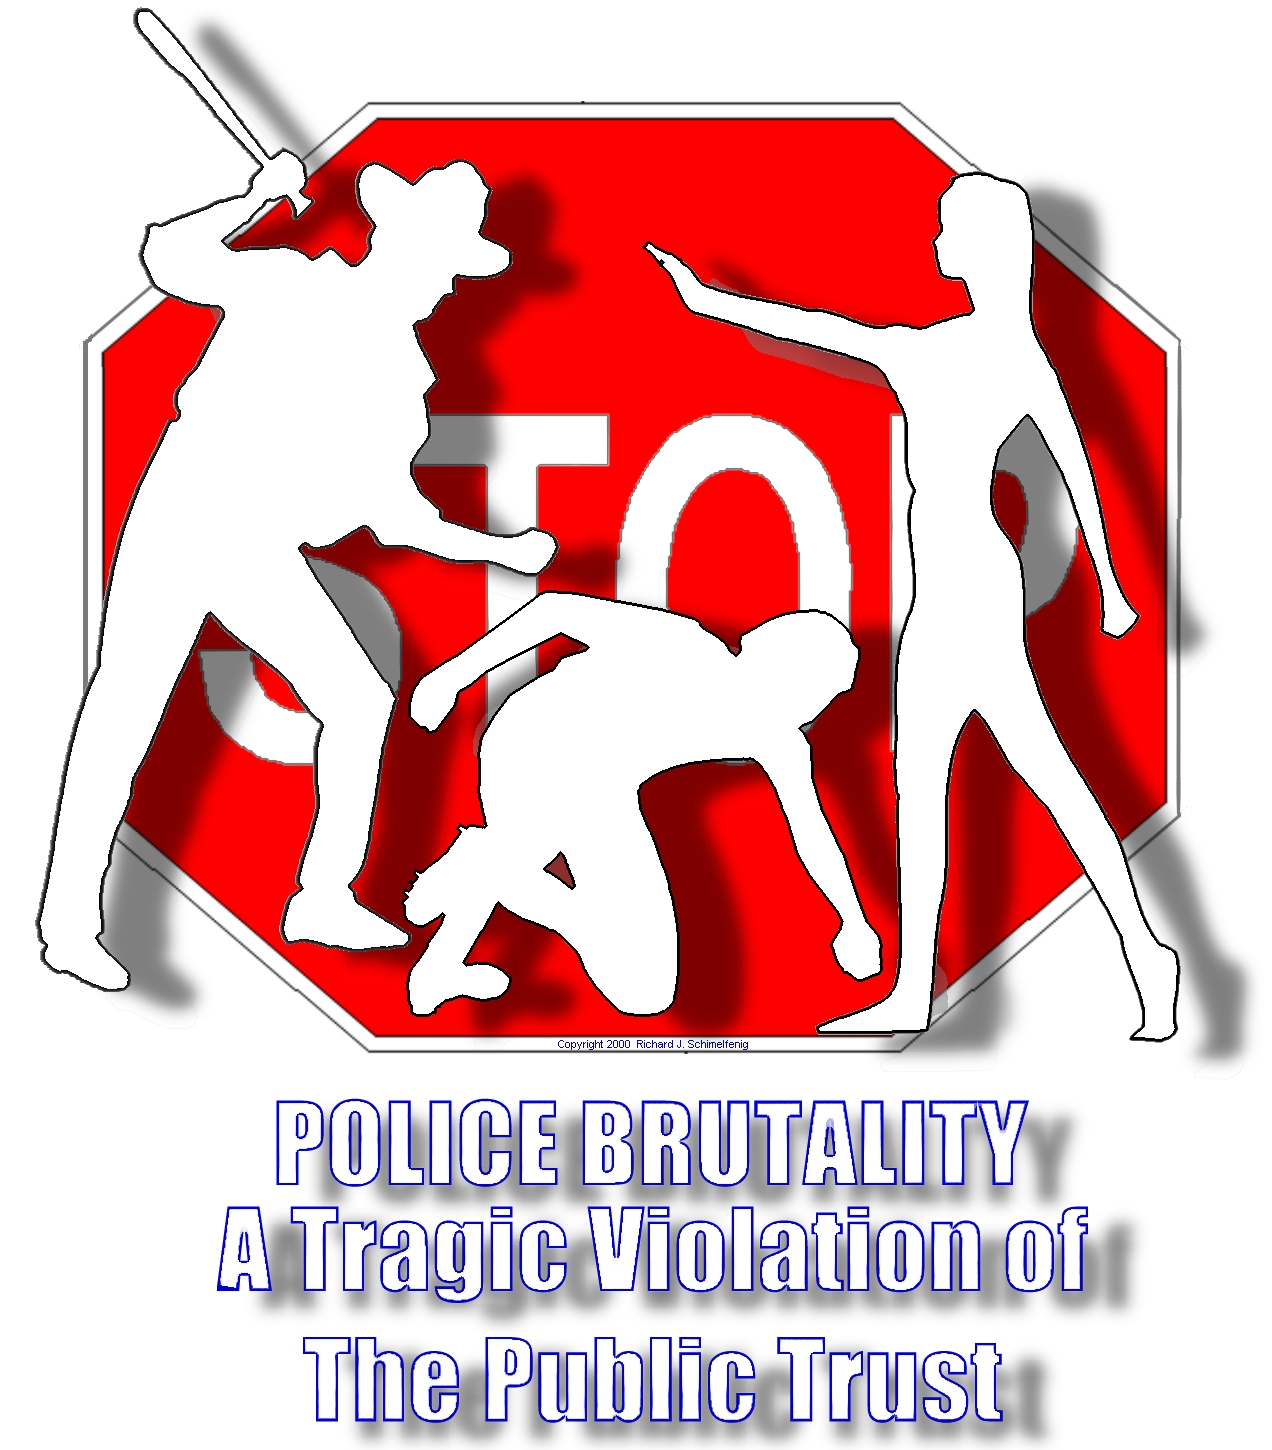 Prohibition Feeds Police Brutality